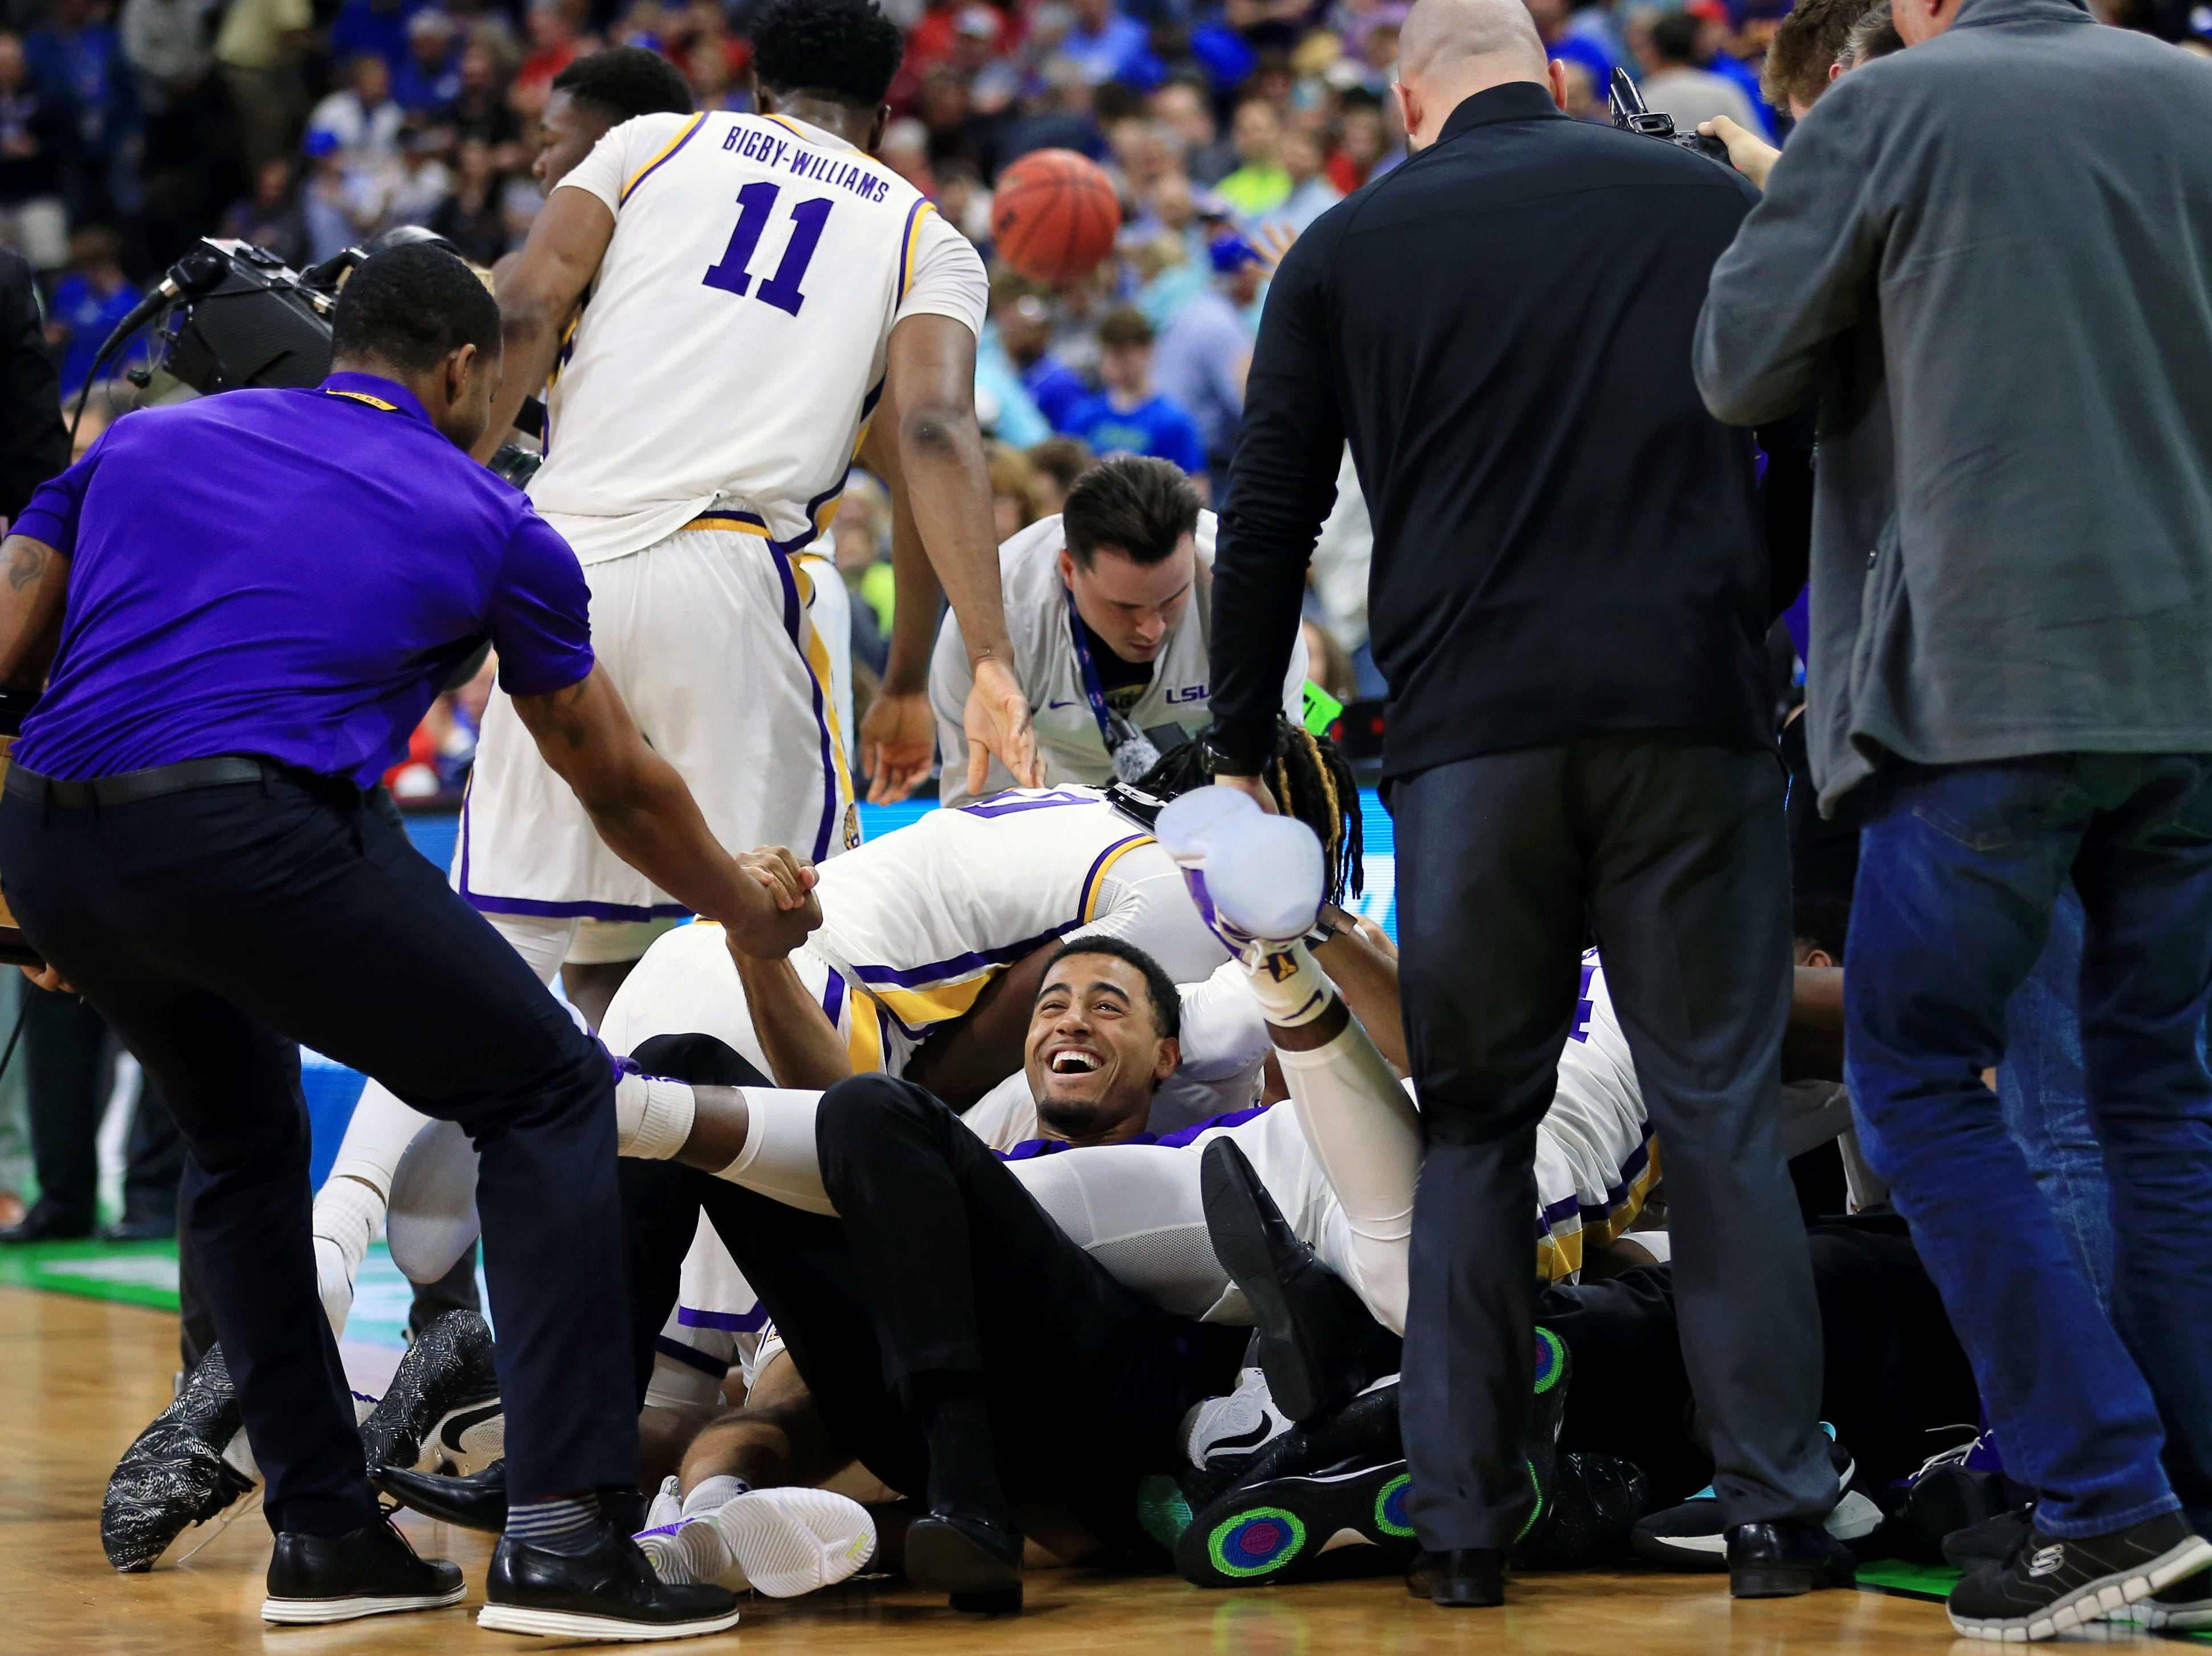 Mar 23, 2019; Jacksonville, FL, USA; The LSU Tigers celebrate their win over the Maryland Terrapins in the second round of the 2019 NCAA Tournament at Jacksonville Veterans Memorial Arena. The LSU Tigers won 69-67. Mandatory Credit: Matt Stamey-USA TODAY Sports